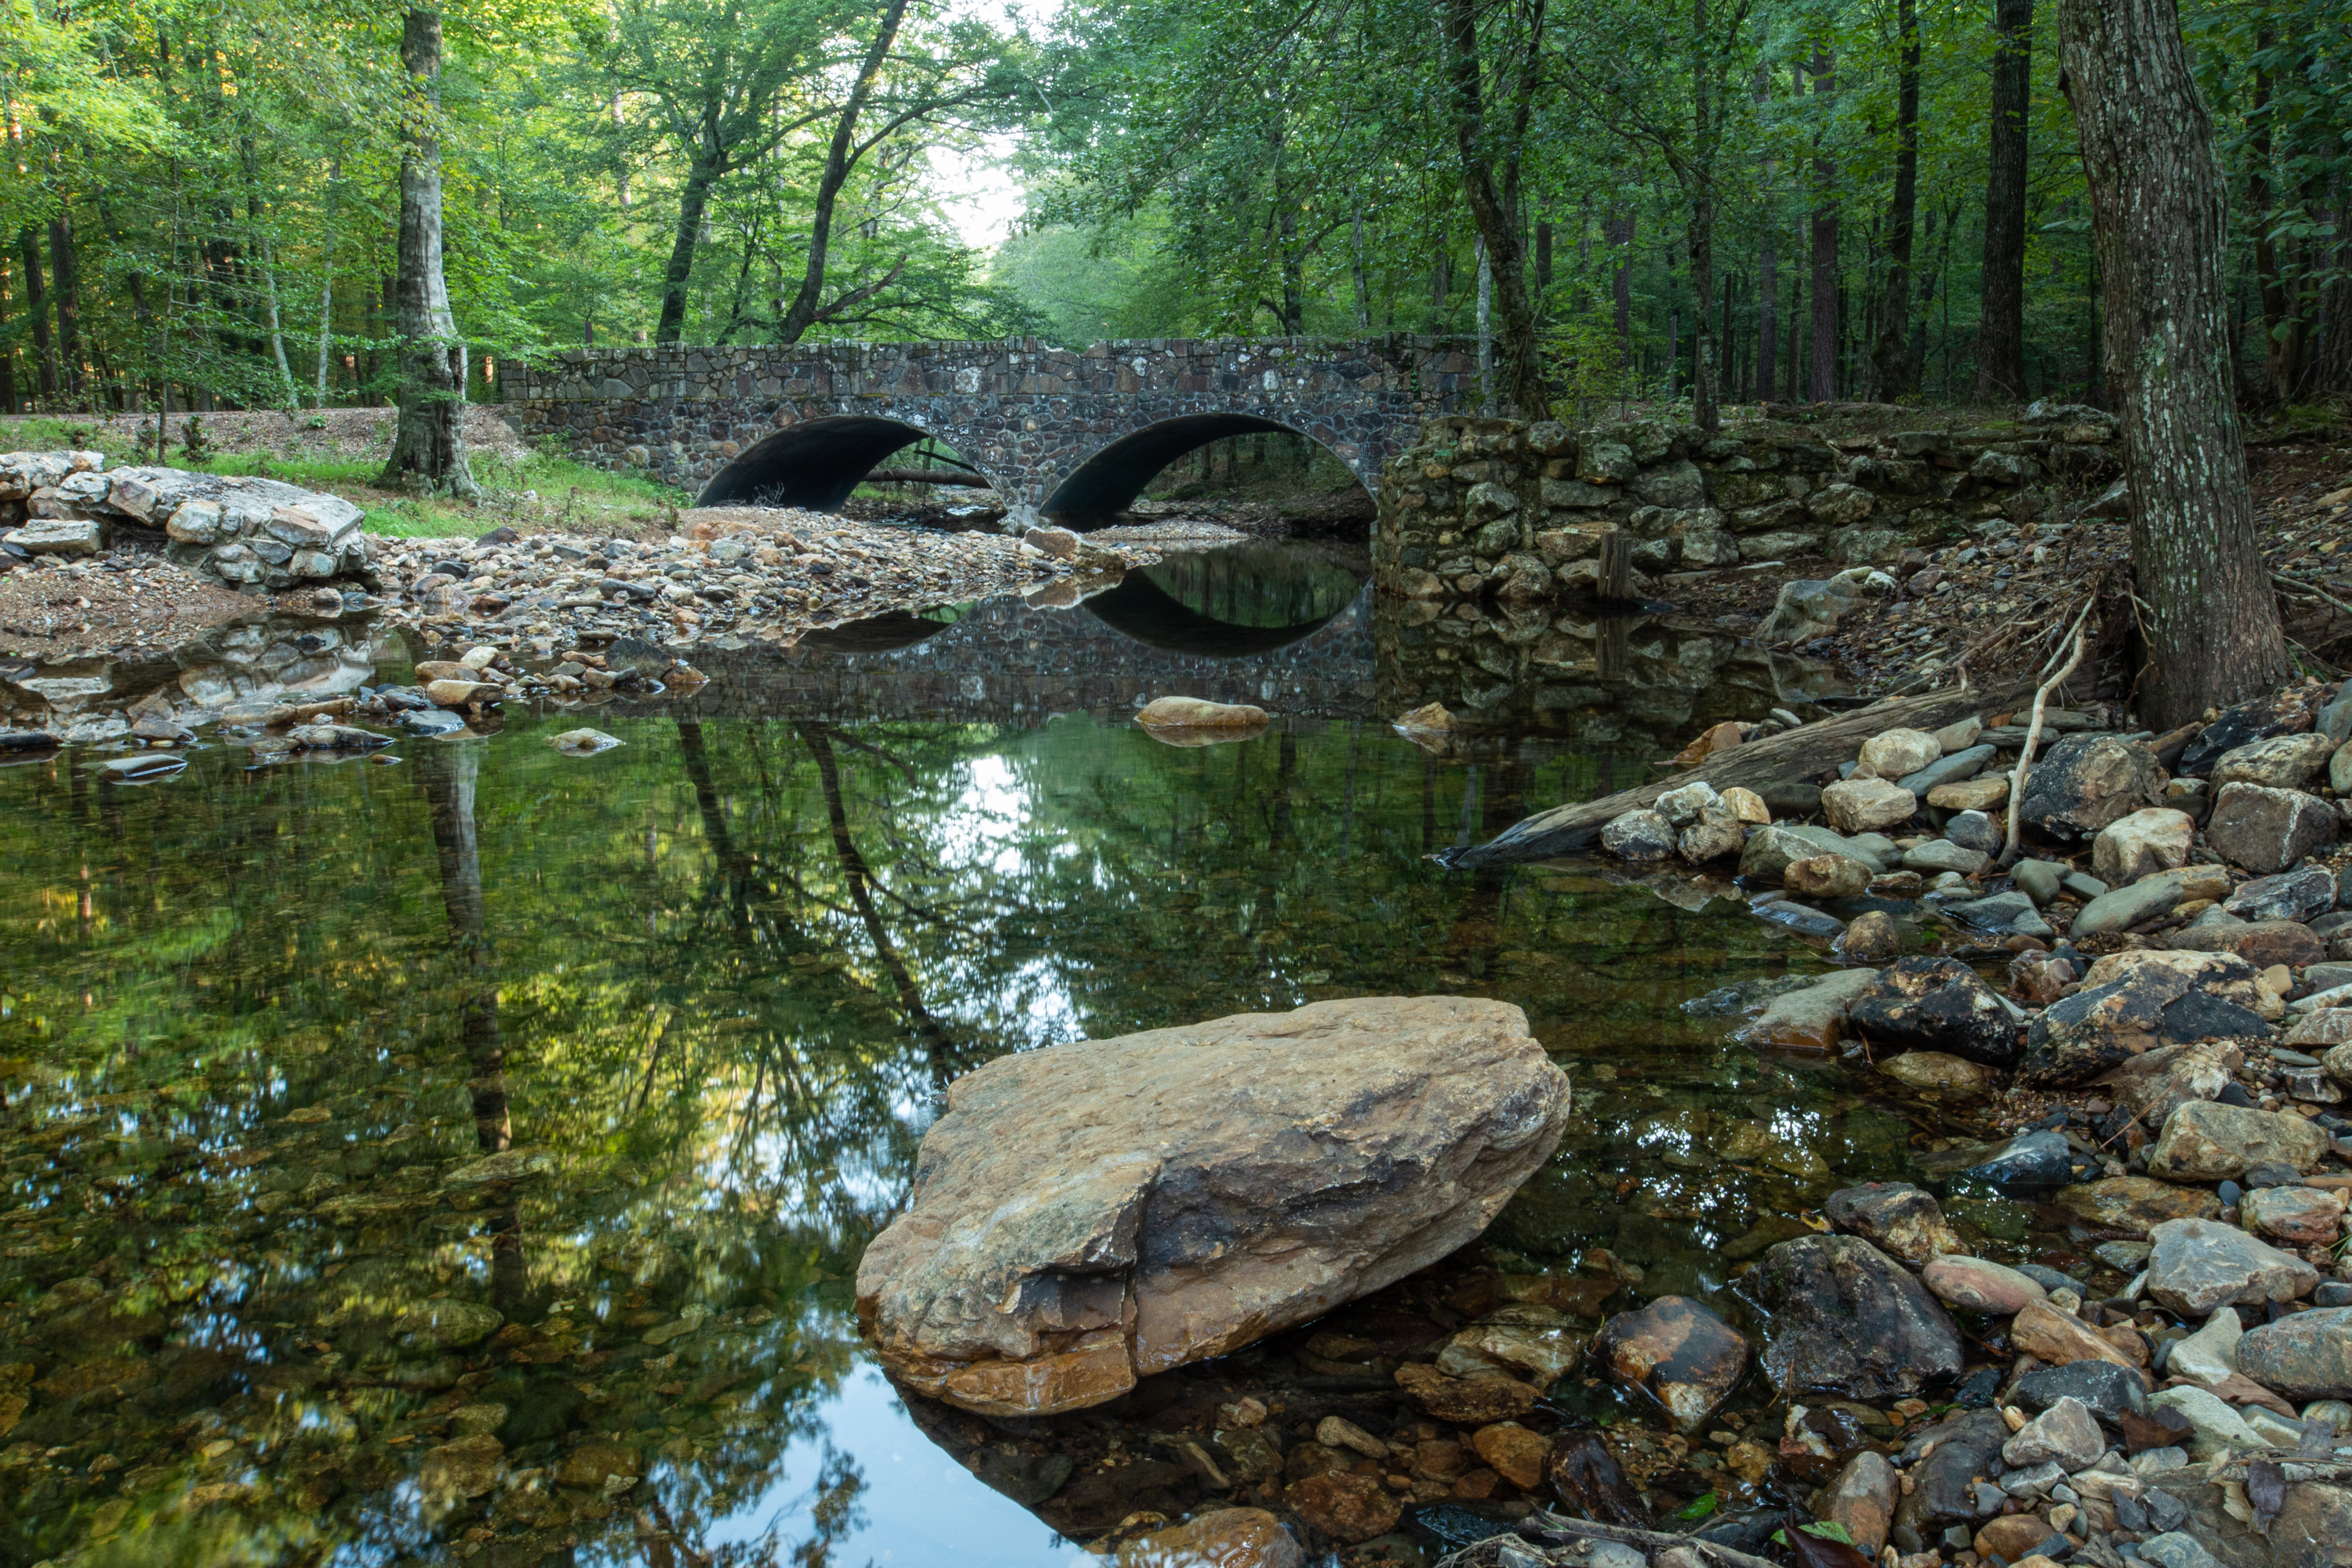 One of the neat CCC bridges at Shady Lake Campground